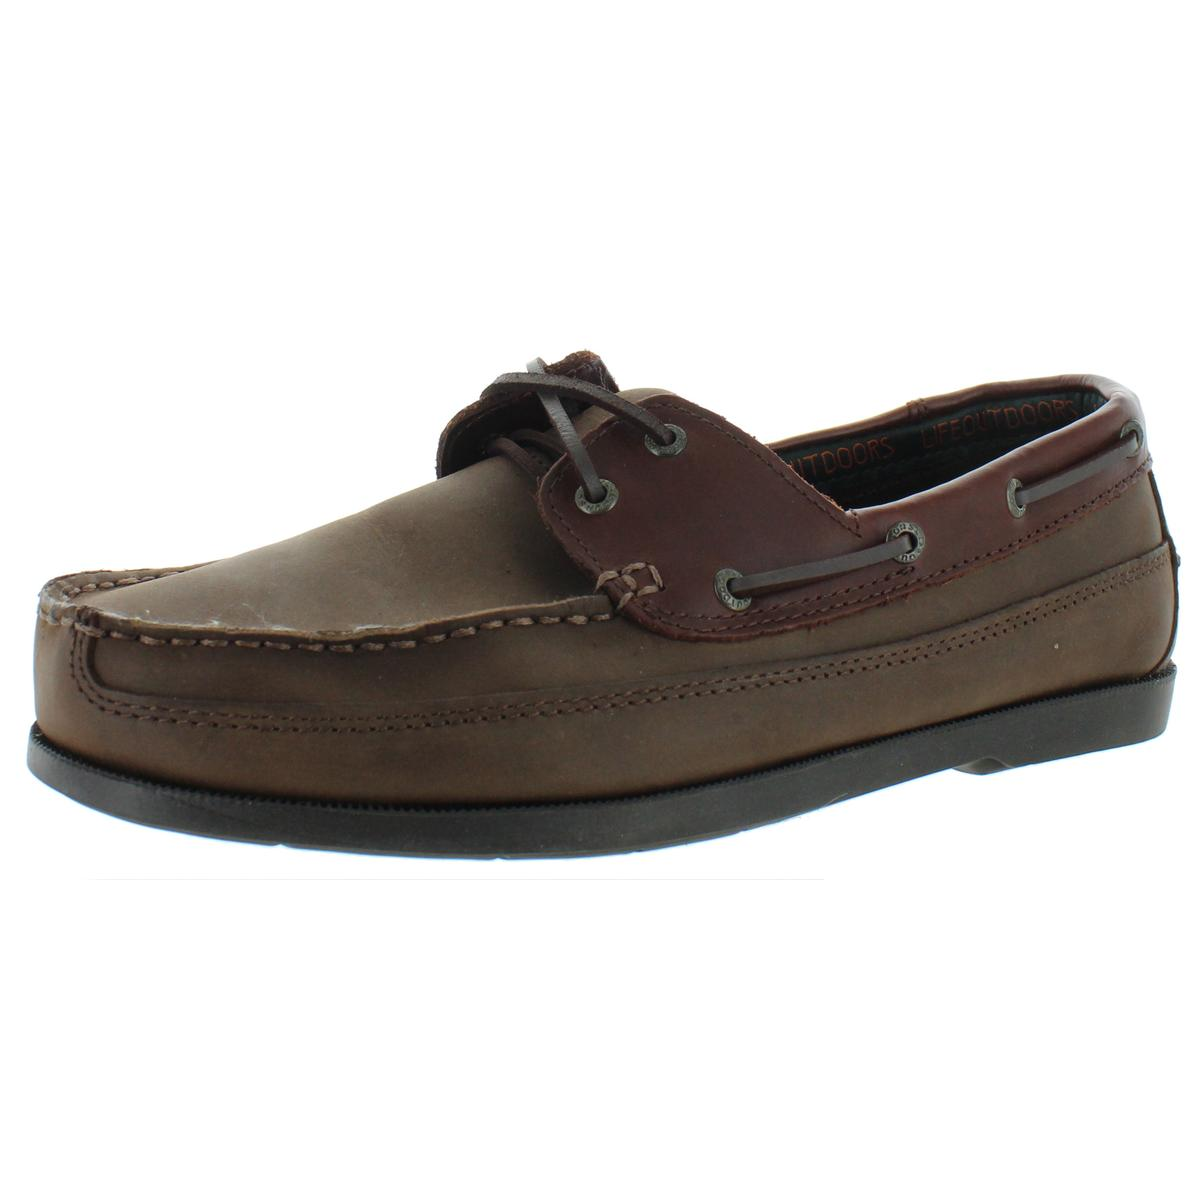 Life Outdoors Mens Brown Boat Shoes Sneakers 8.5 Extra Wide